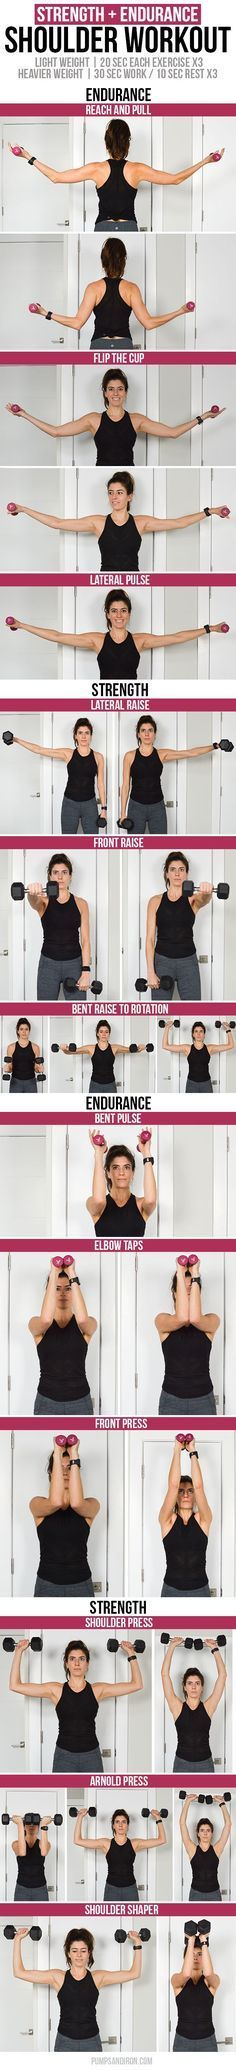 Shoulder Workout - low weight/high rep endurance rounds mixed with heavier strength circuits